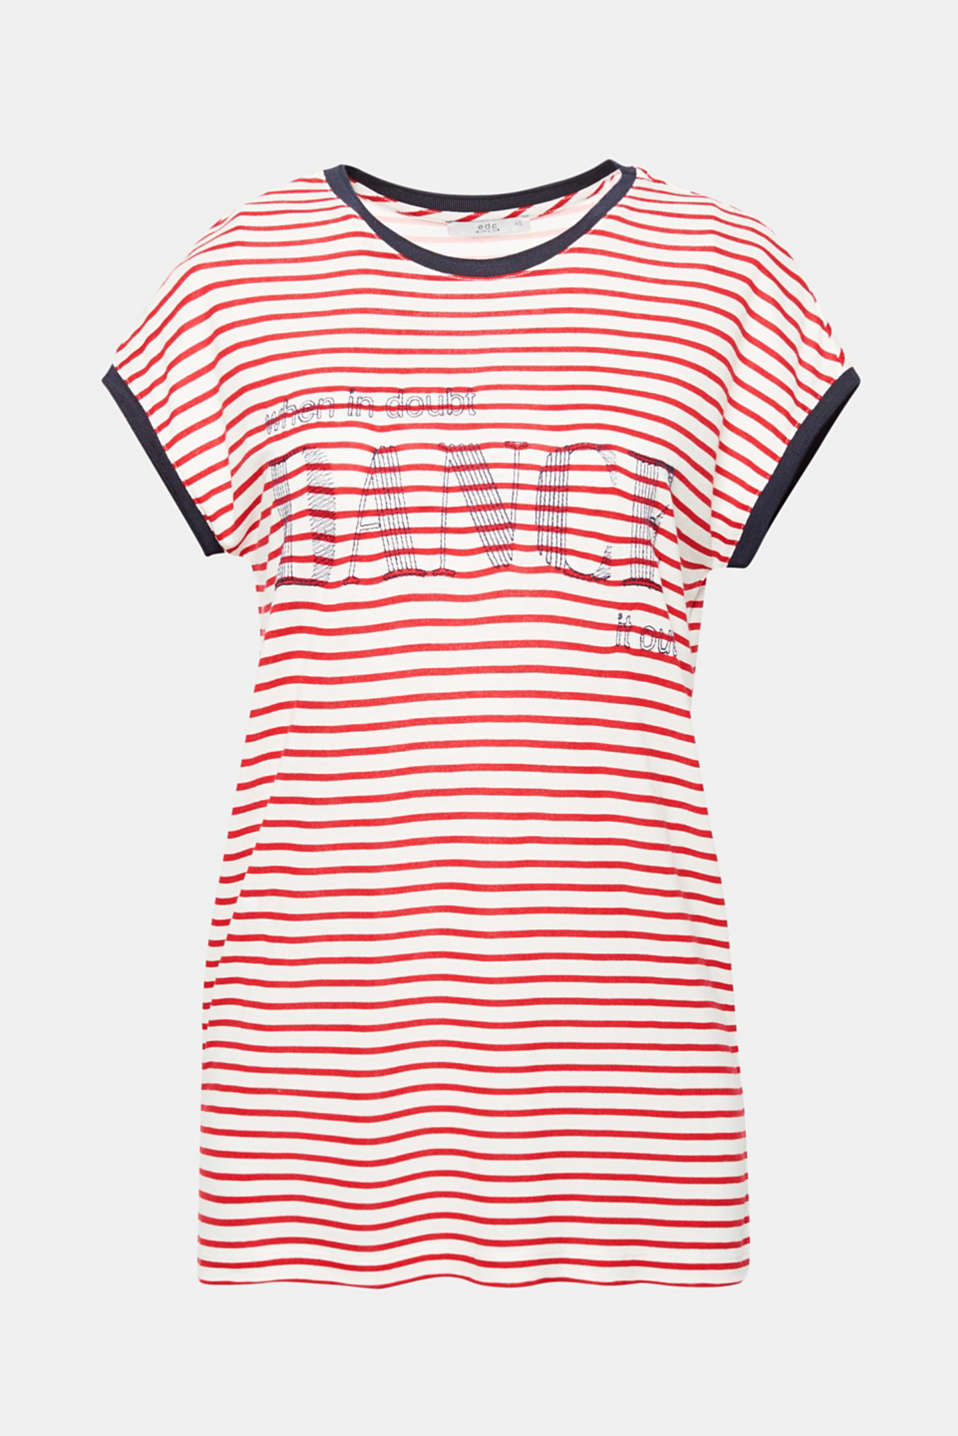 We love dance! The embroidered statement and stripes give this airy T-shirt a fantastic fashion vibe!